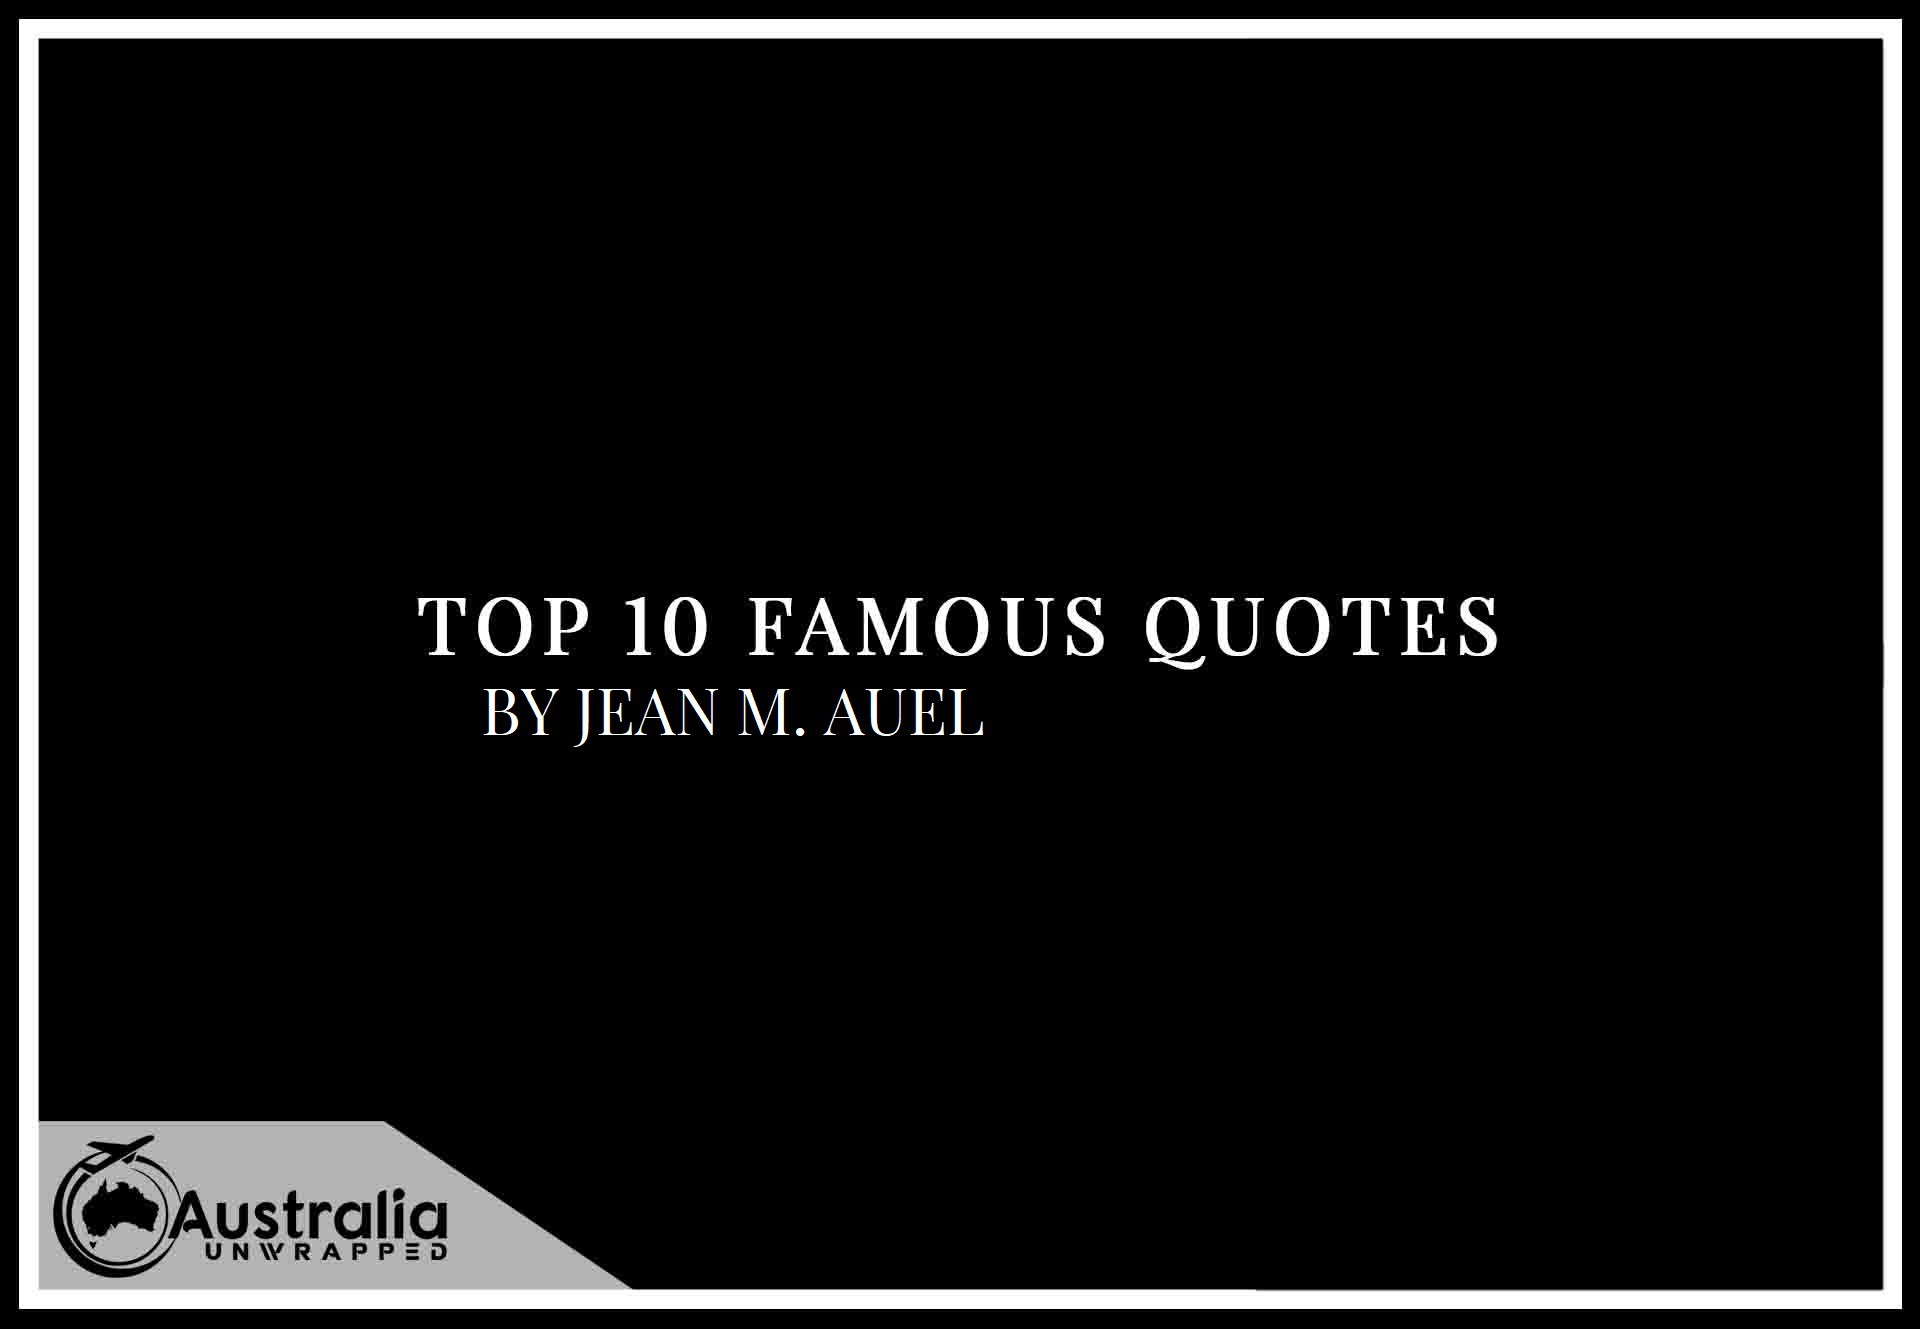 Top 10 Famous Quotes by Author Jean M. Auel